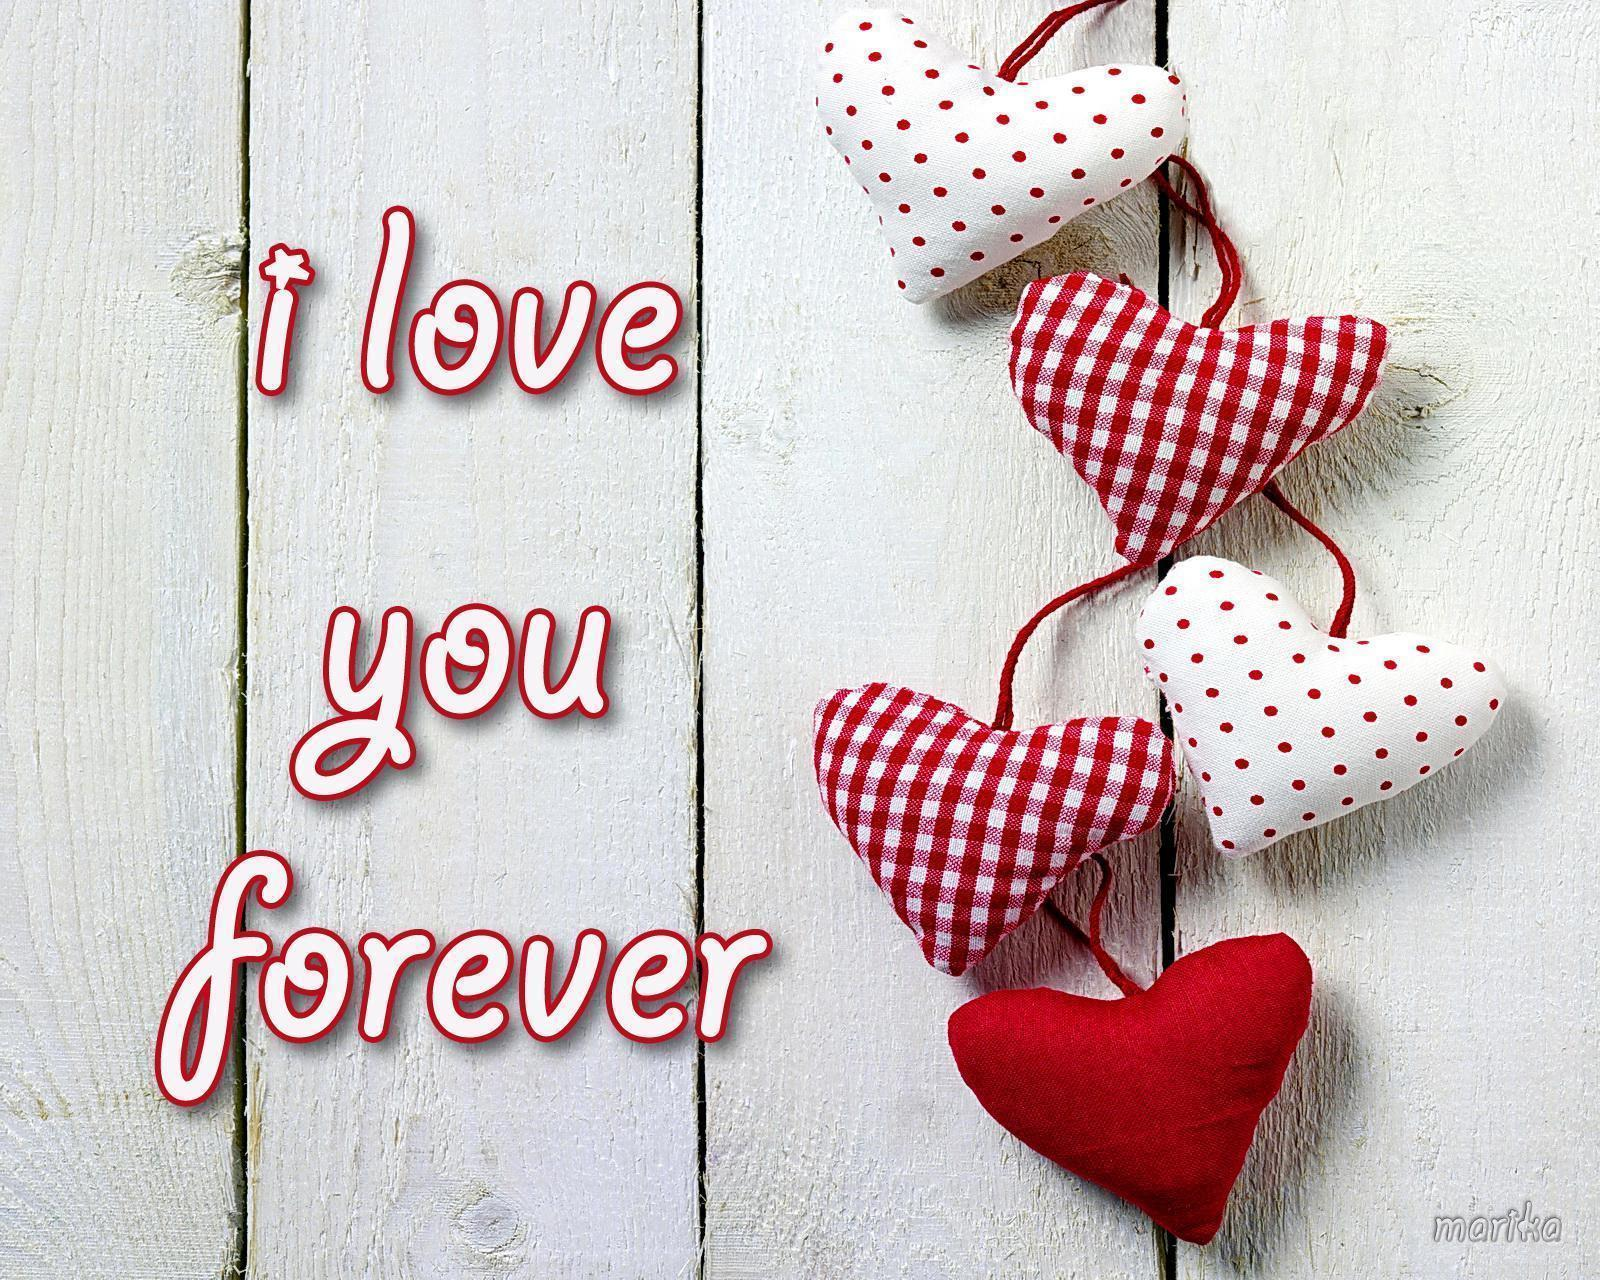 Love Wallpaper U And Me : I Love You Wallpapers - Wallpaper cave